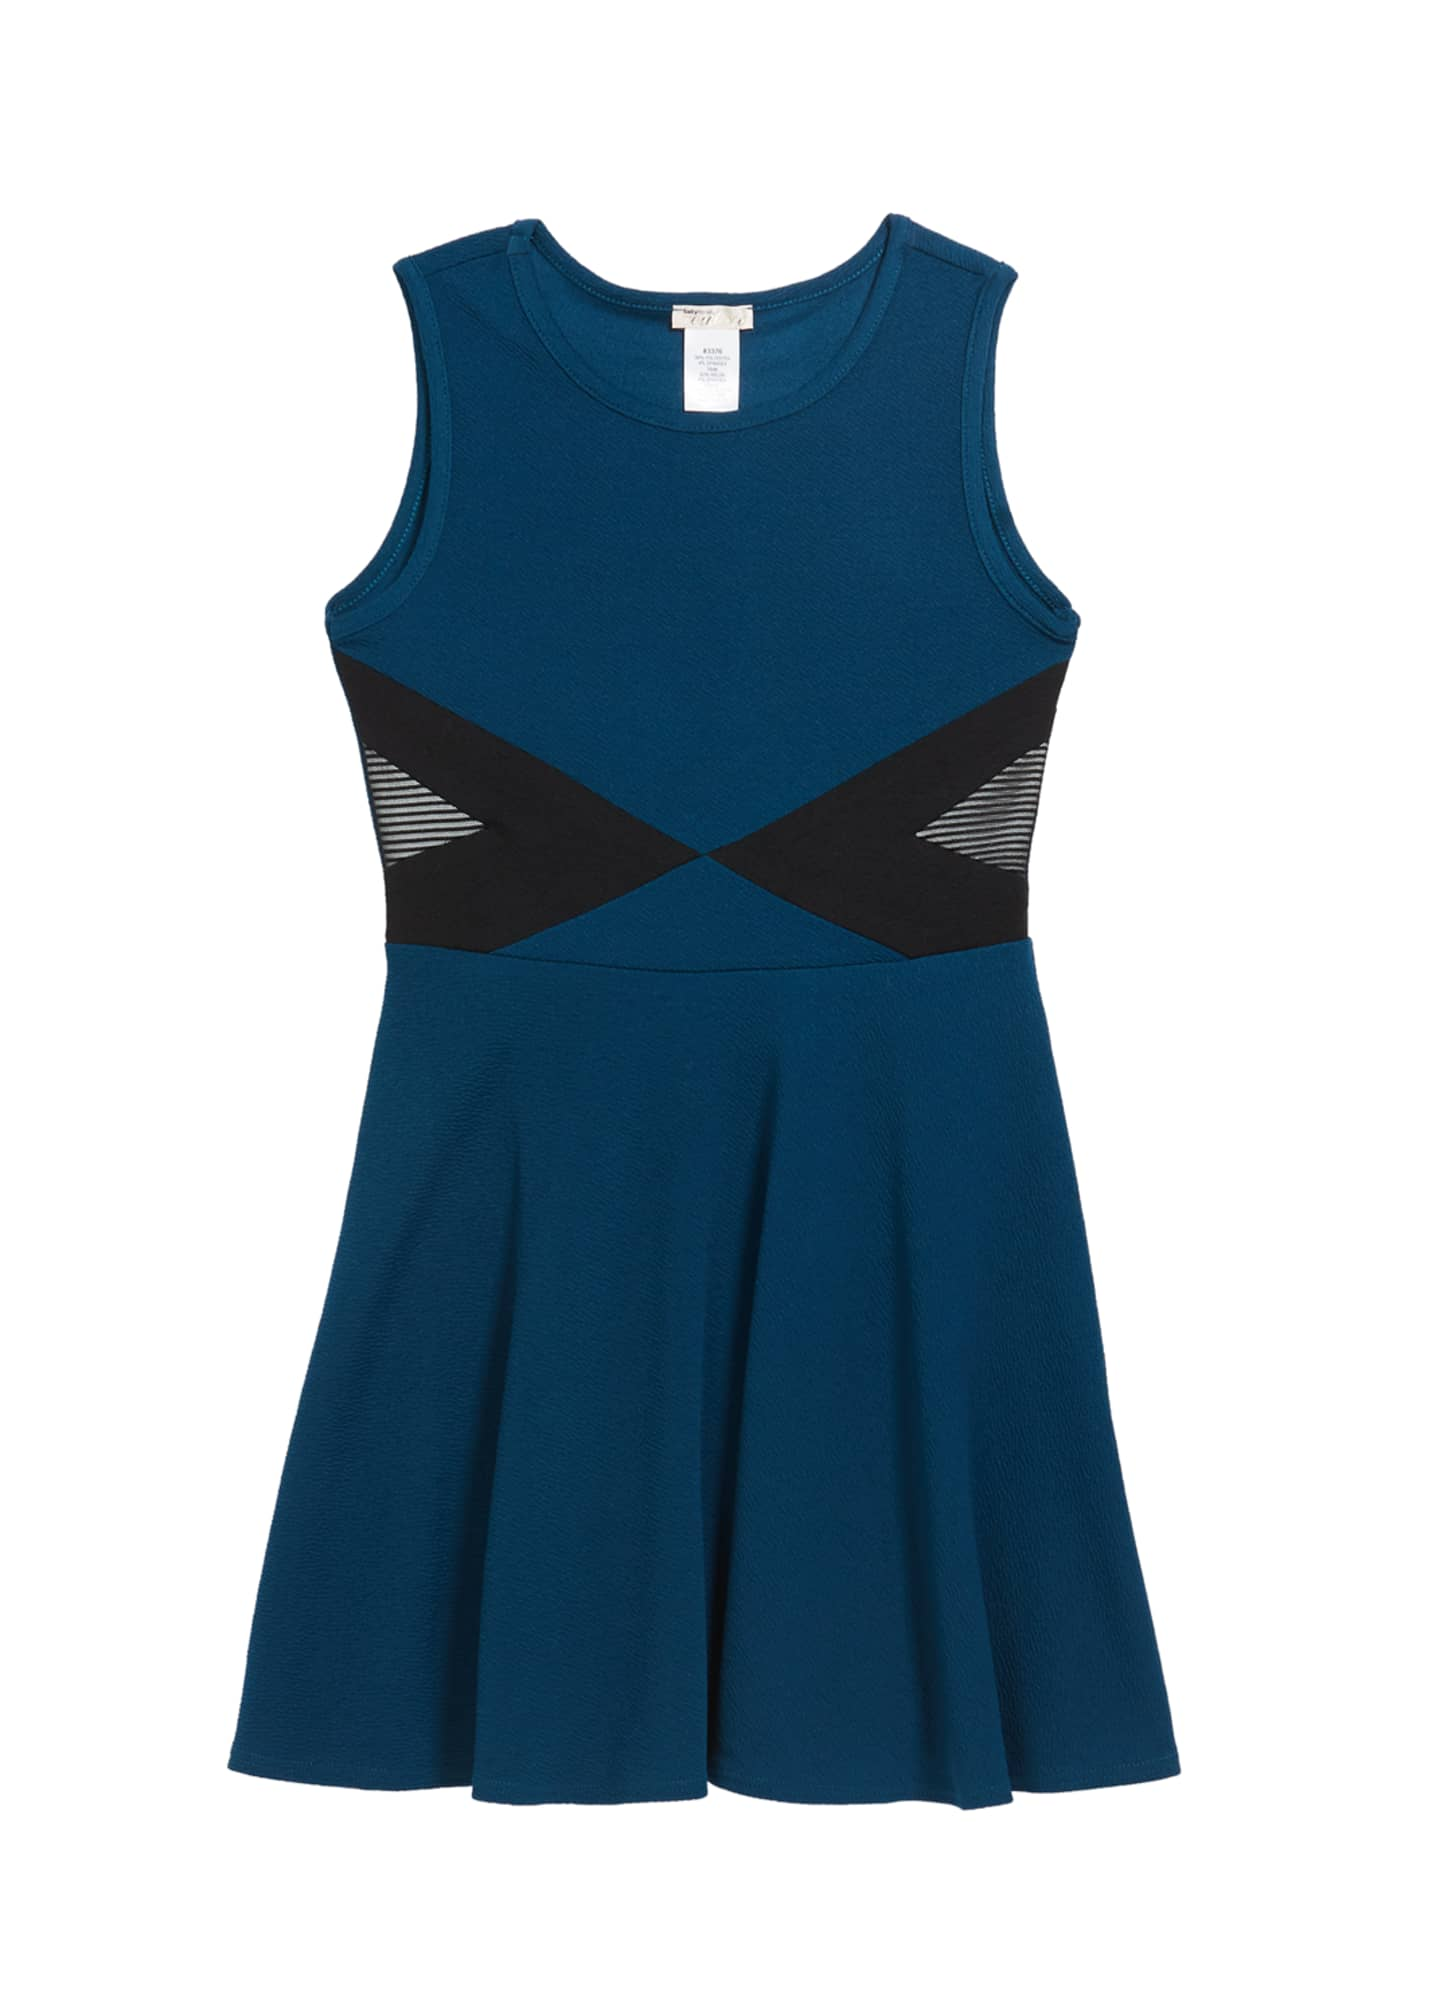 Sally Miller Girl's The Jada Mesh Trim Dress,